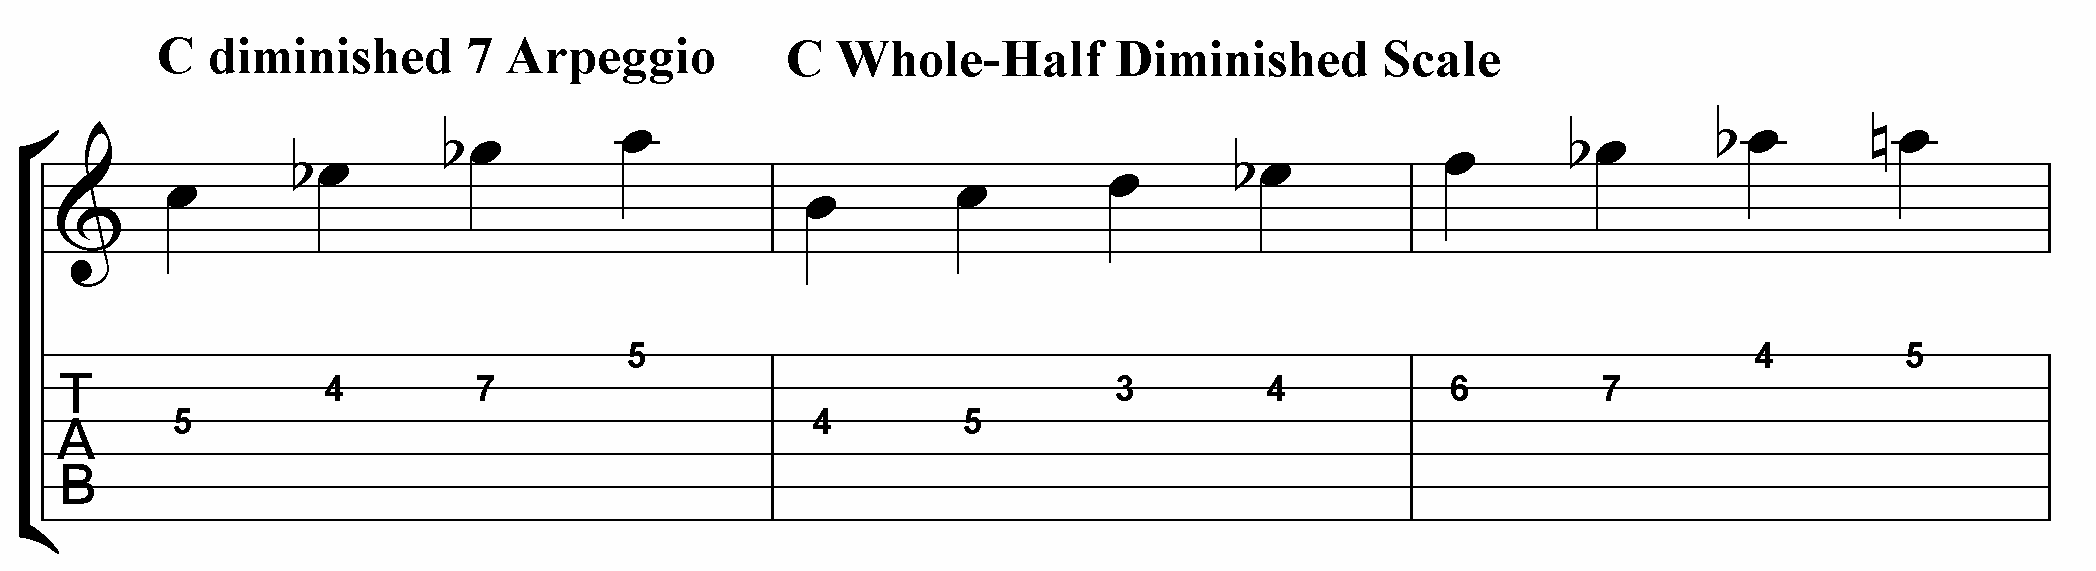 How to play diminished scales on guitar jamie holroyd guitar whole half diminished scale hexwebz Choice Image